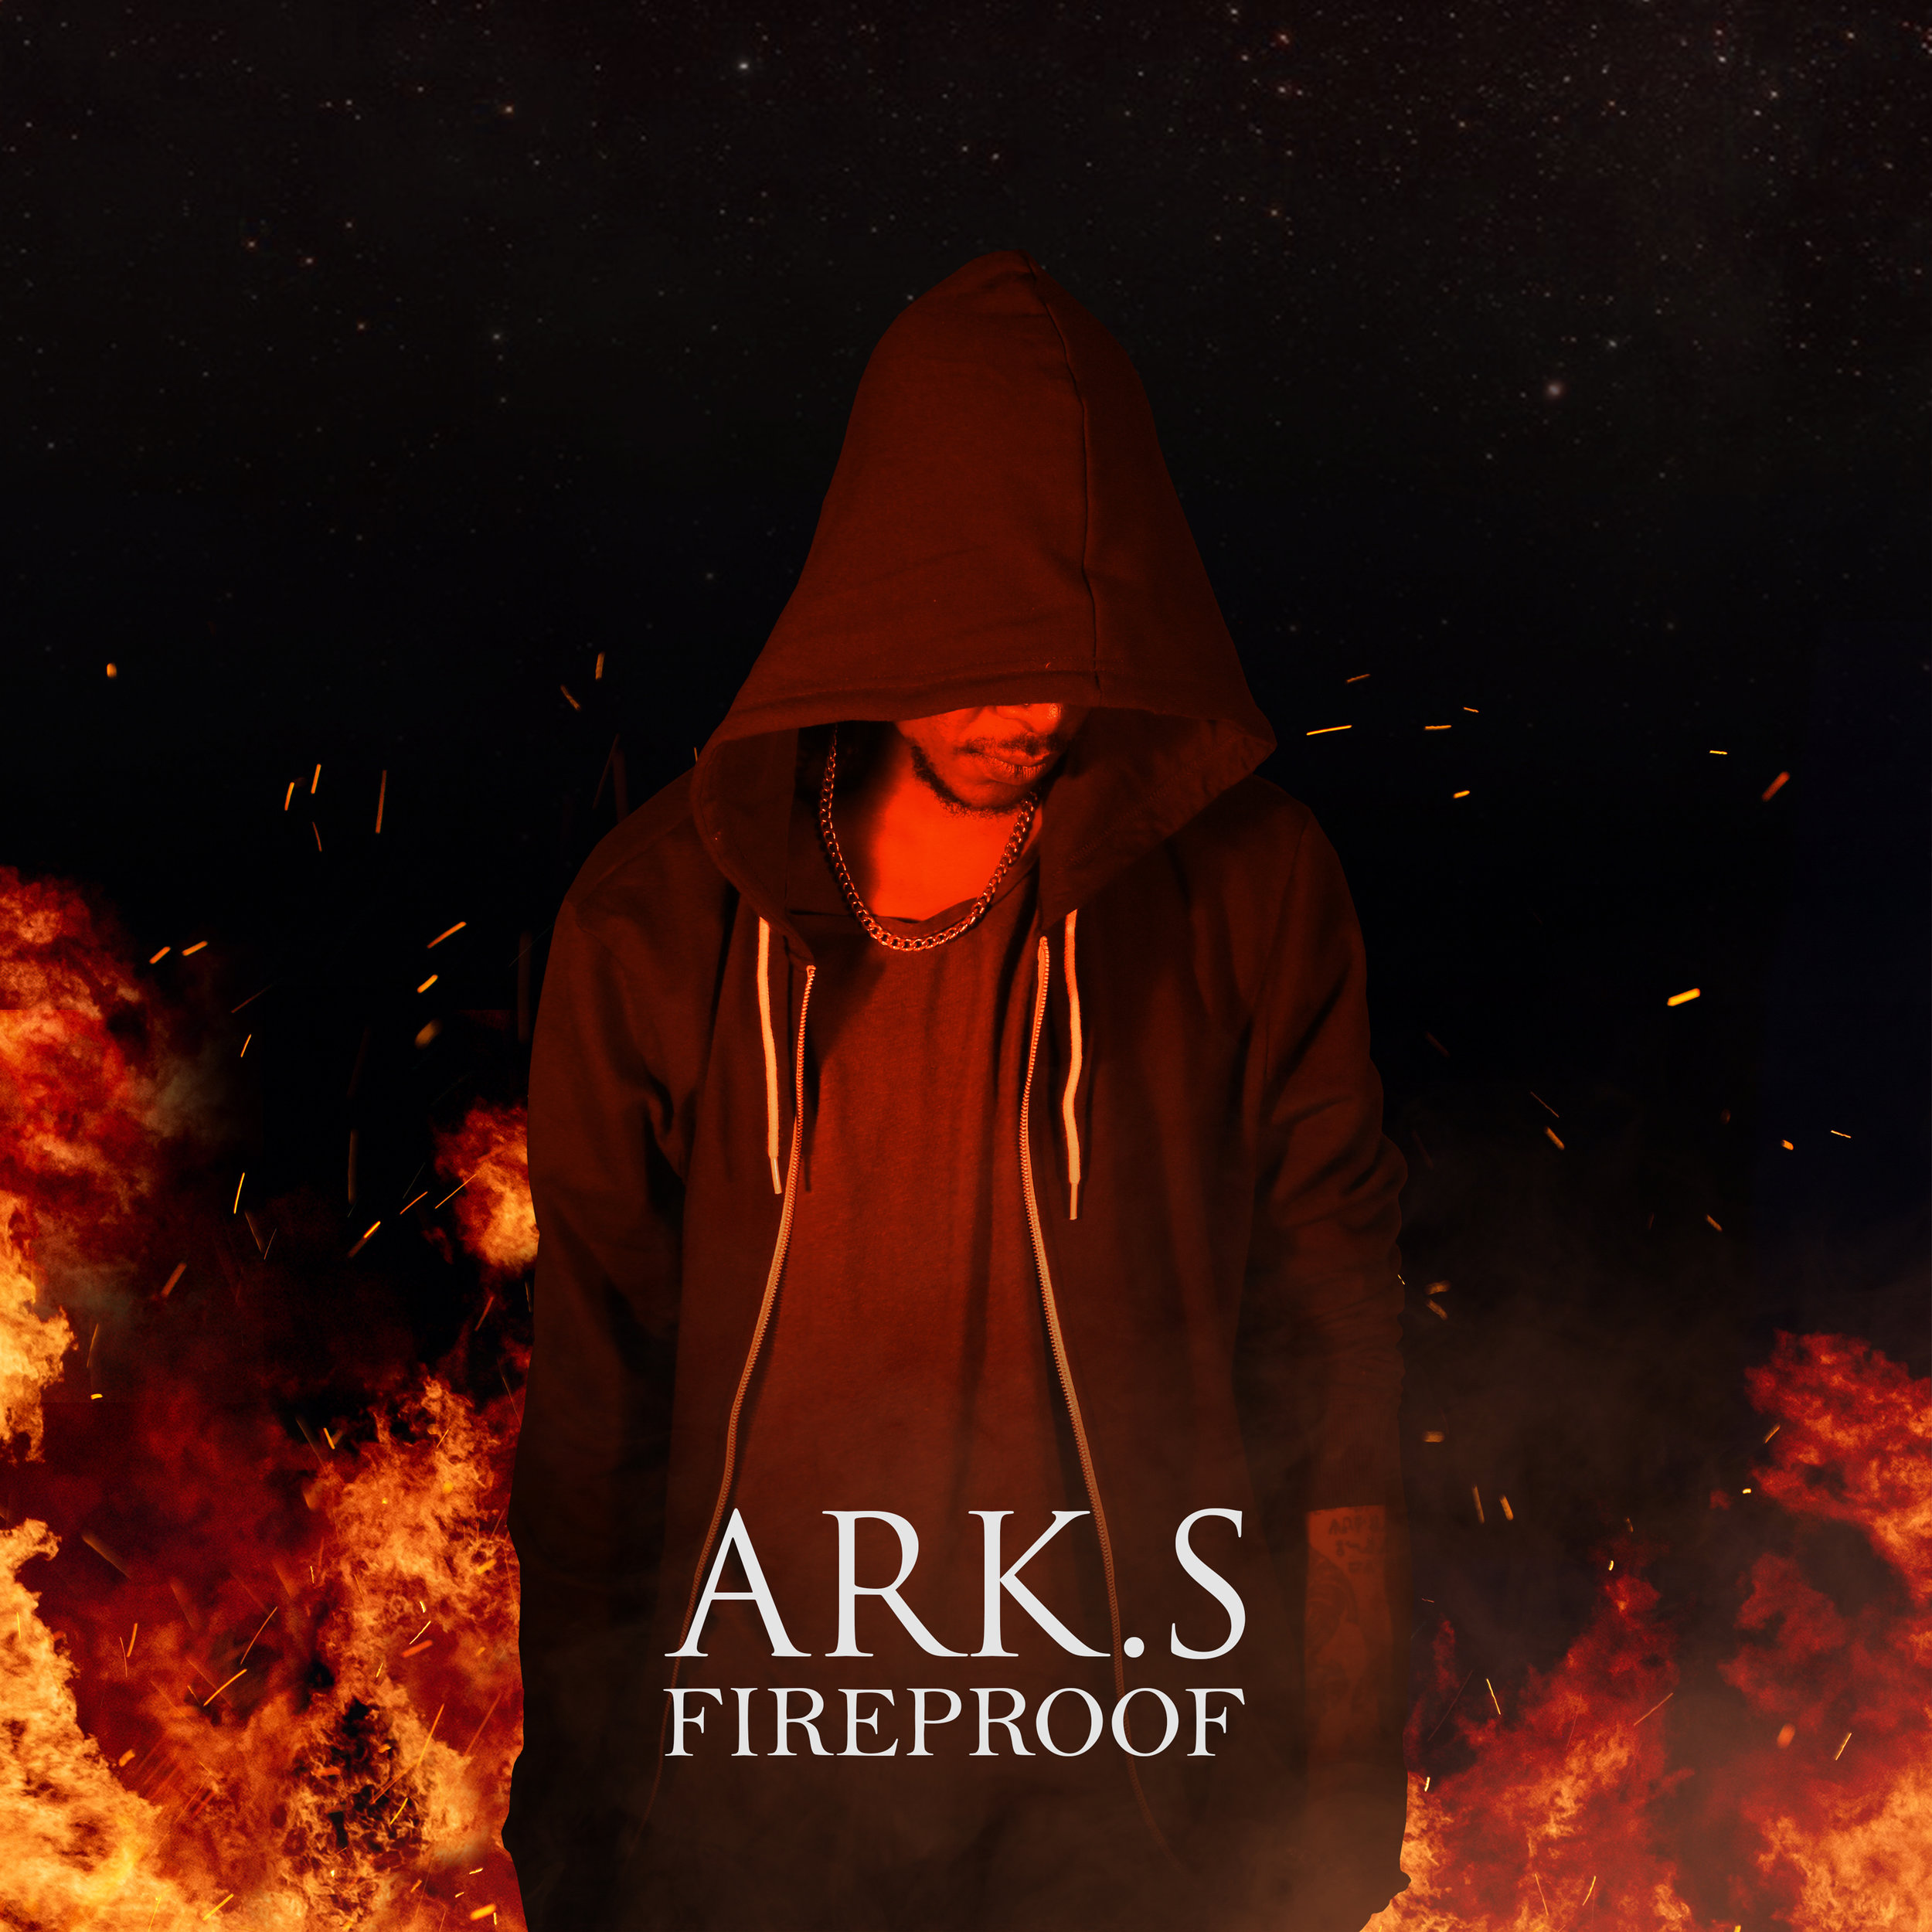 ARK.S - Fireproof - AEP00013 - Single